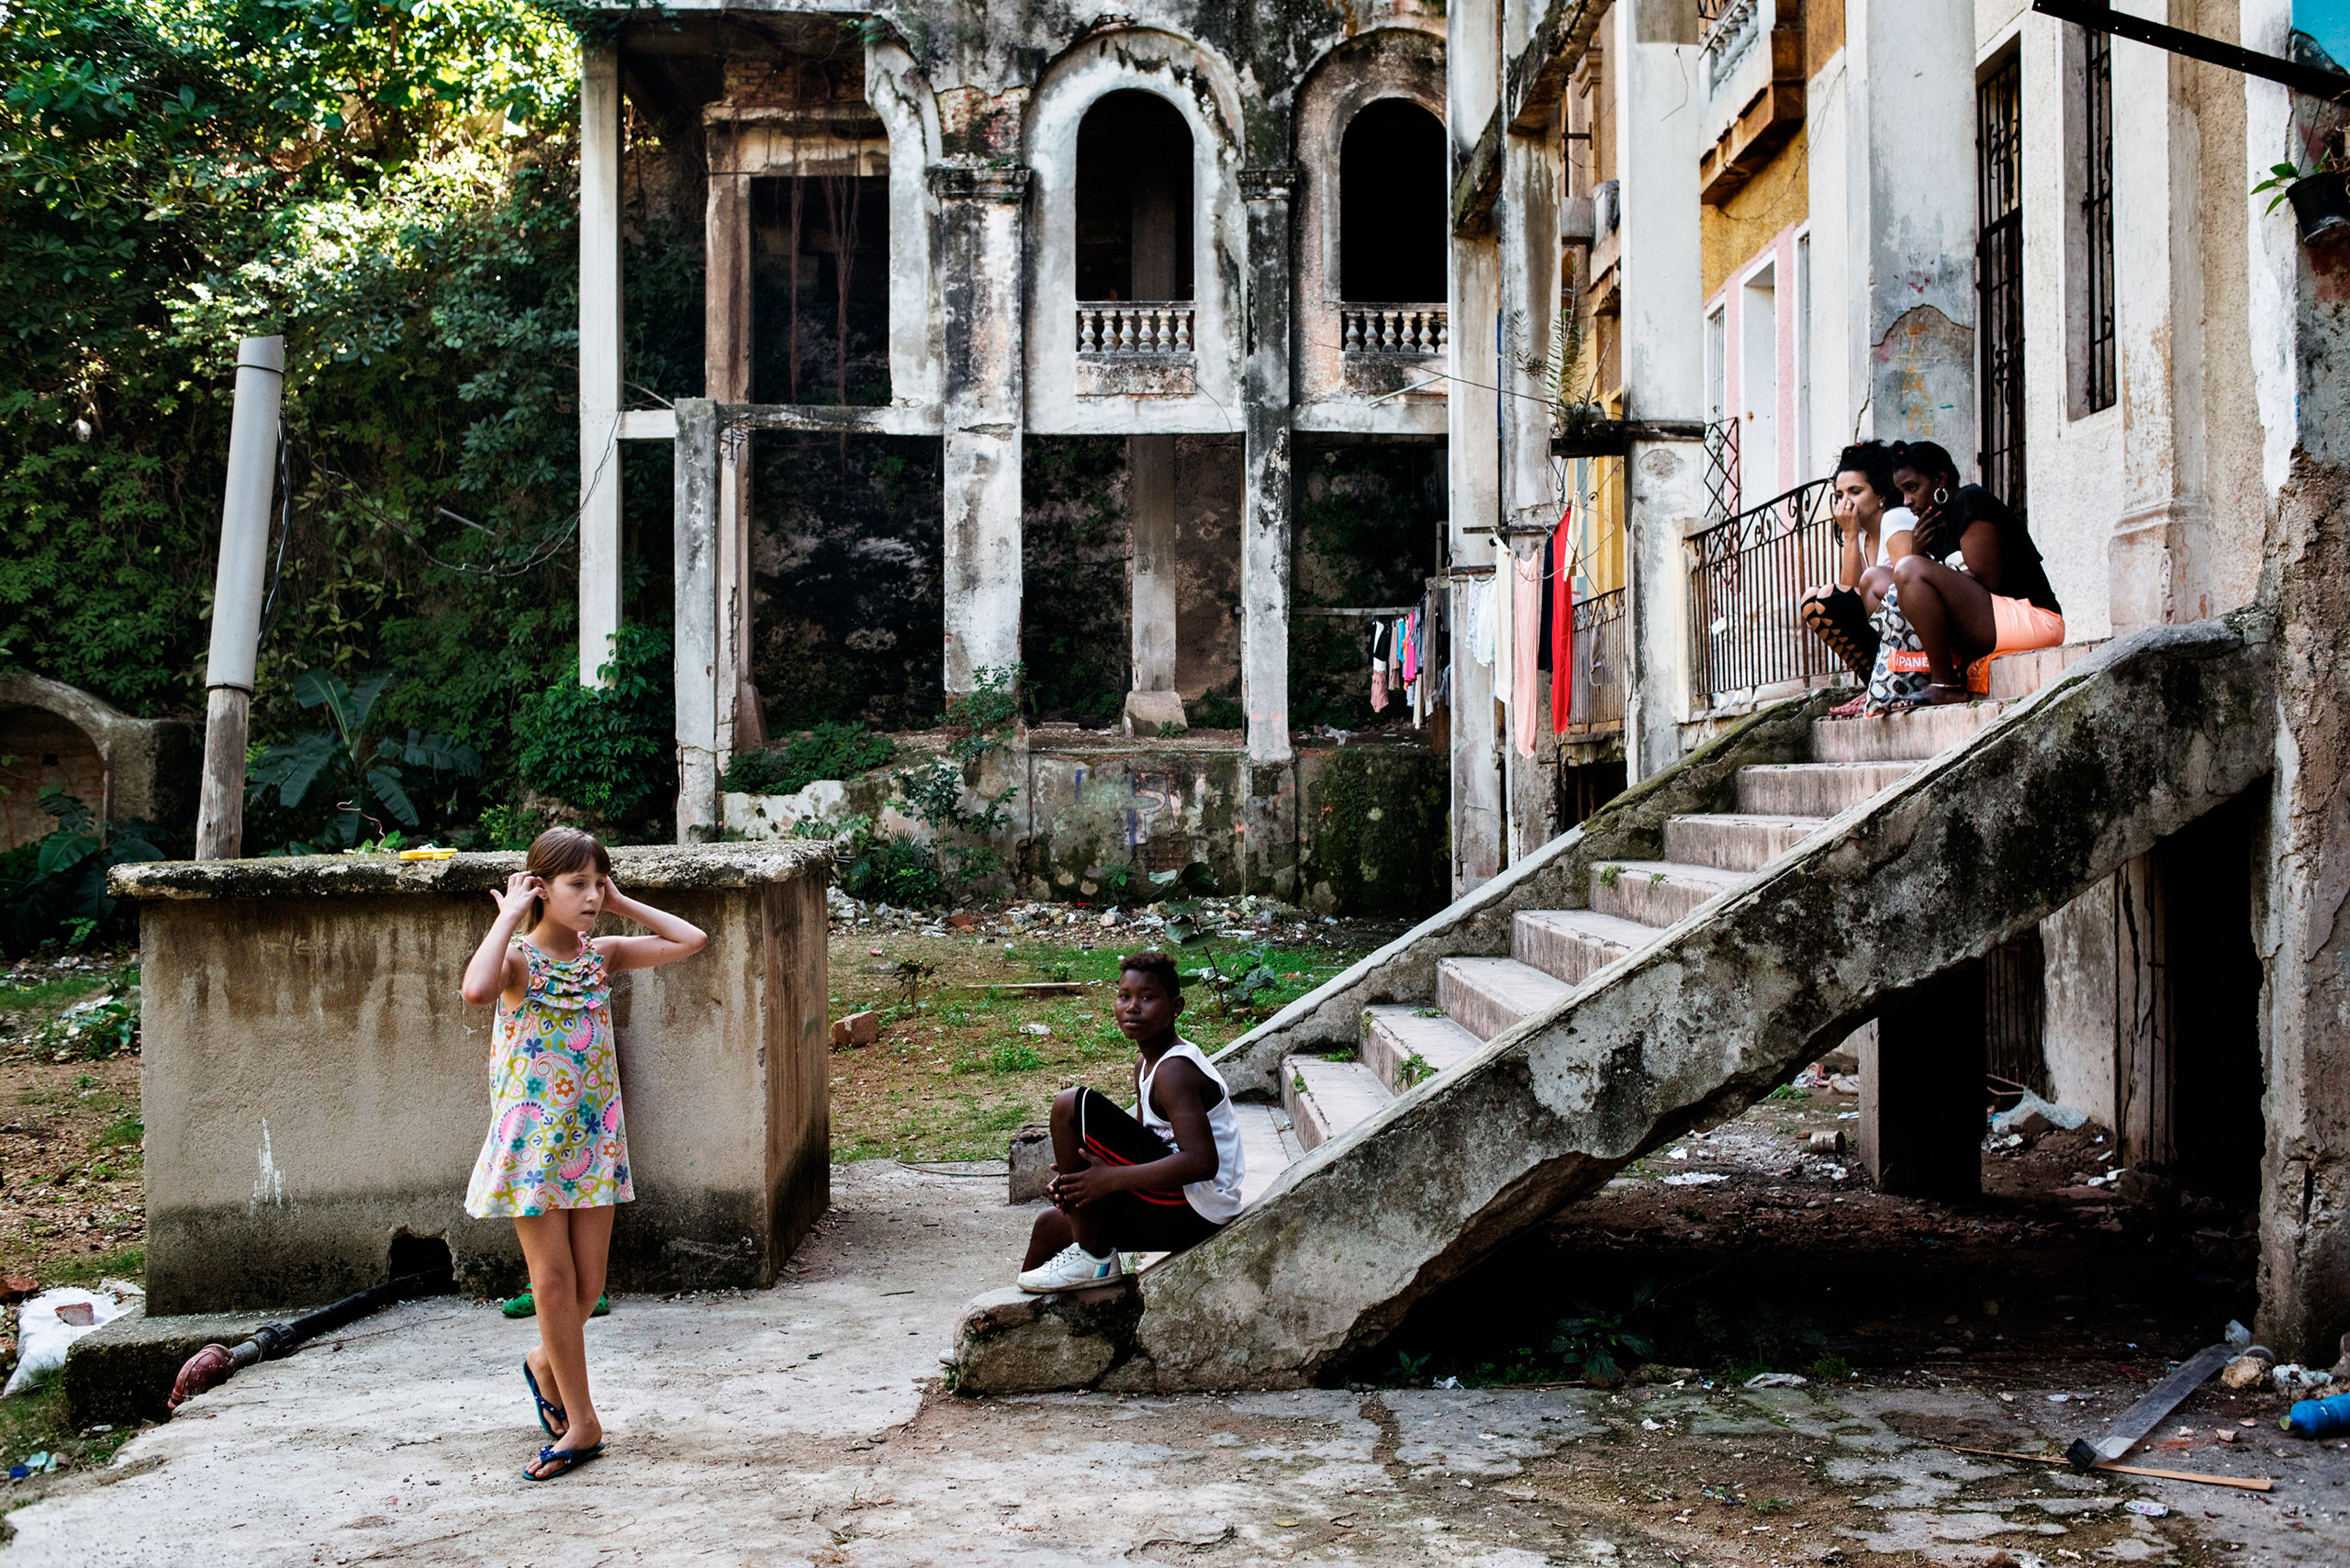 Young girls play on the grounds of the Arcos building, an iconic building in the El Vedado neighborhood of Havana.From  Take a Walk Through the Streets of Cuba